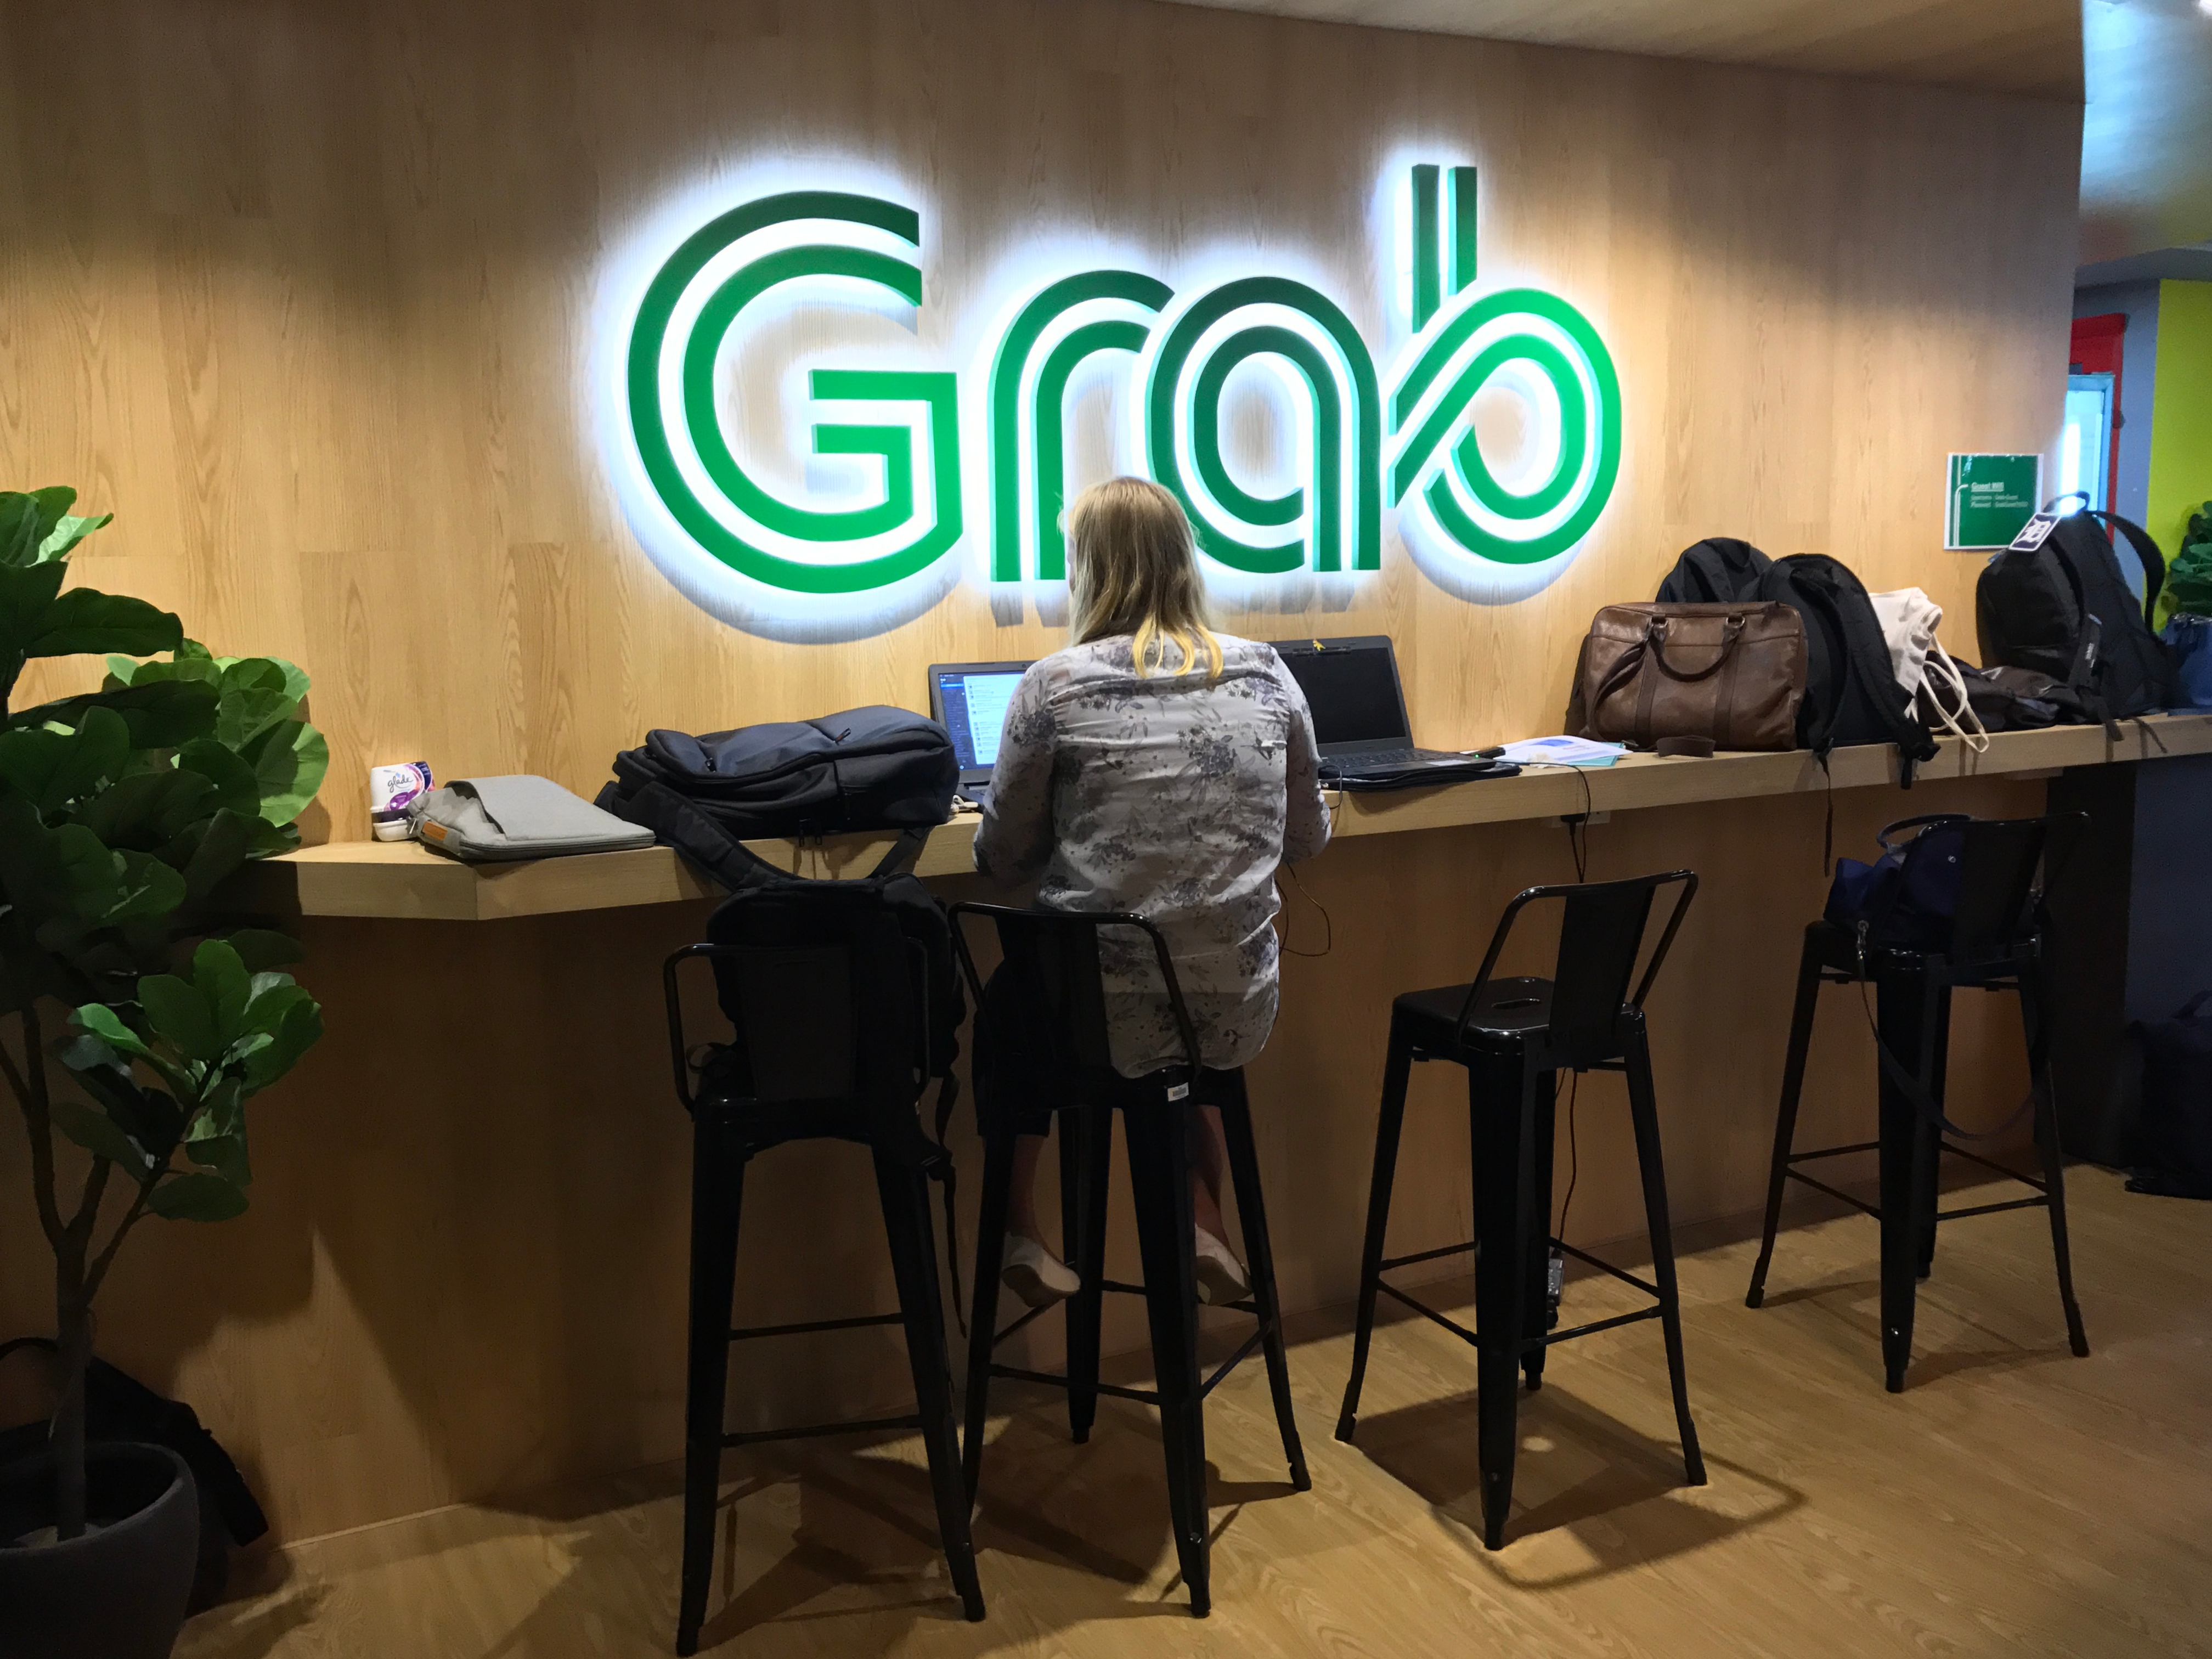 Grab Uber Deal Wins Philippines Approval But Virtual Monopolist